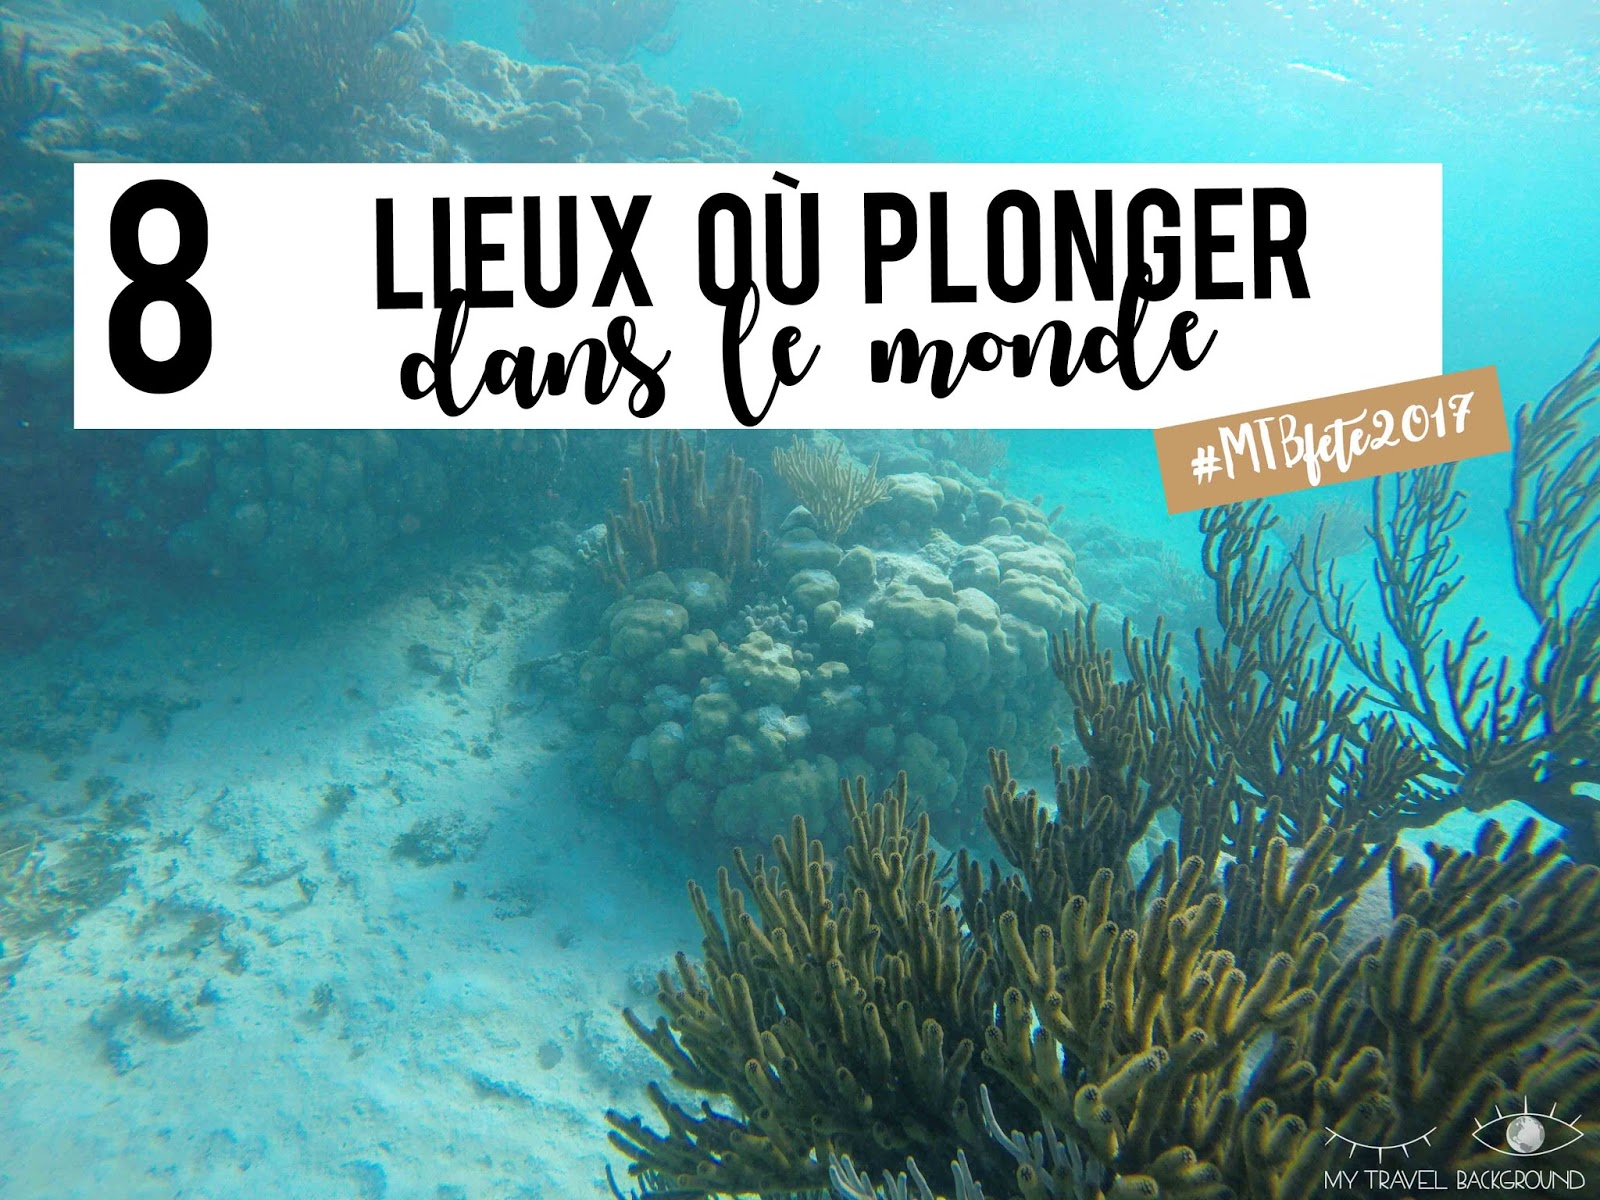 My Travel Background : 8 lieux où plonger dans le monde